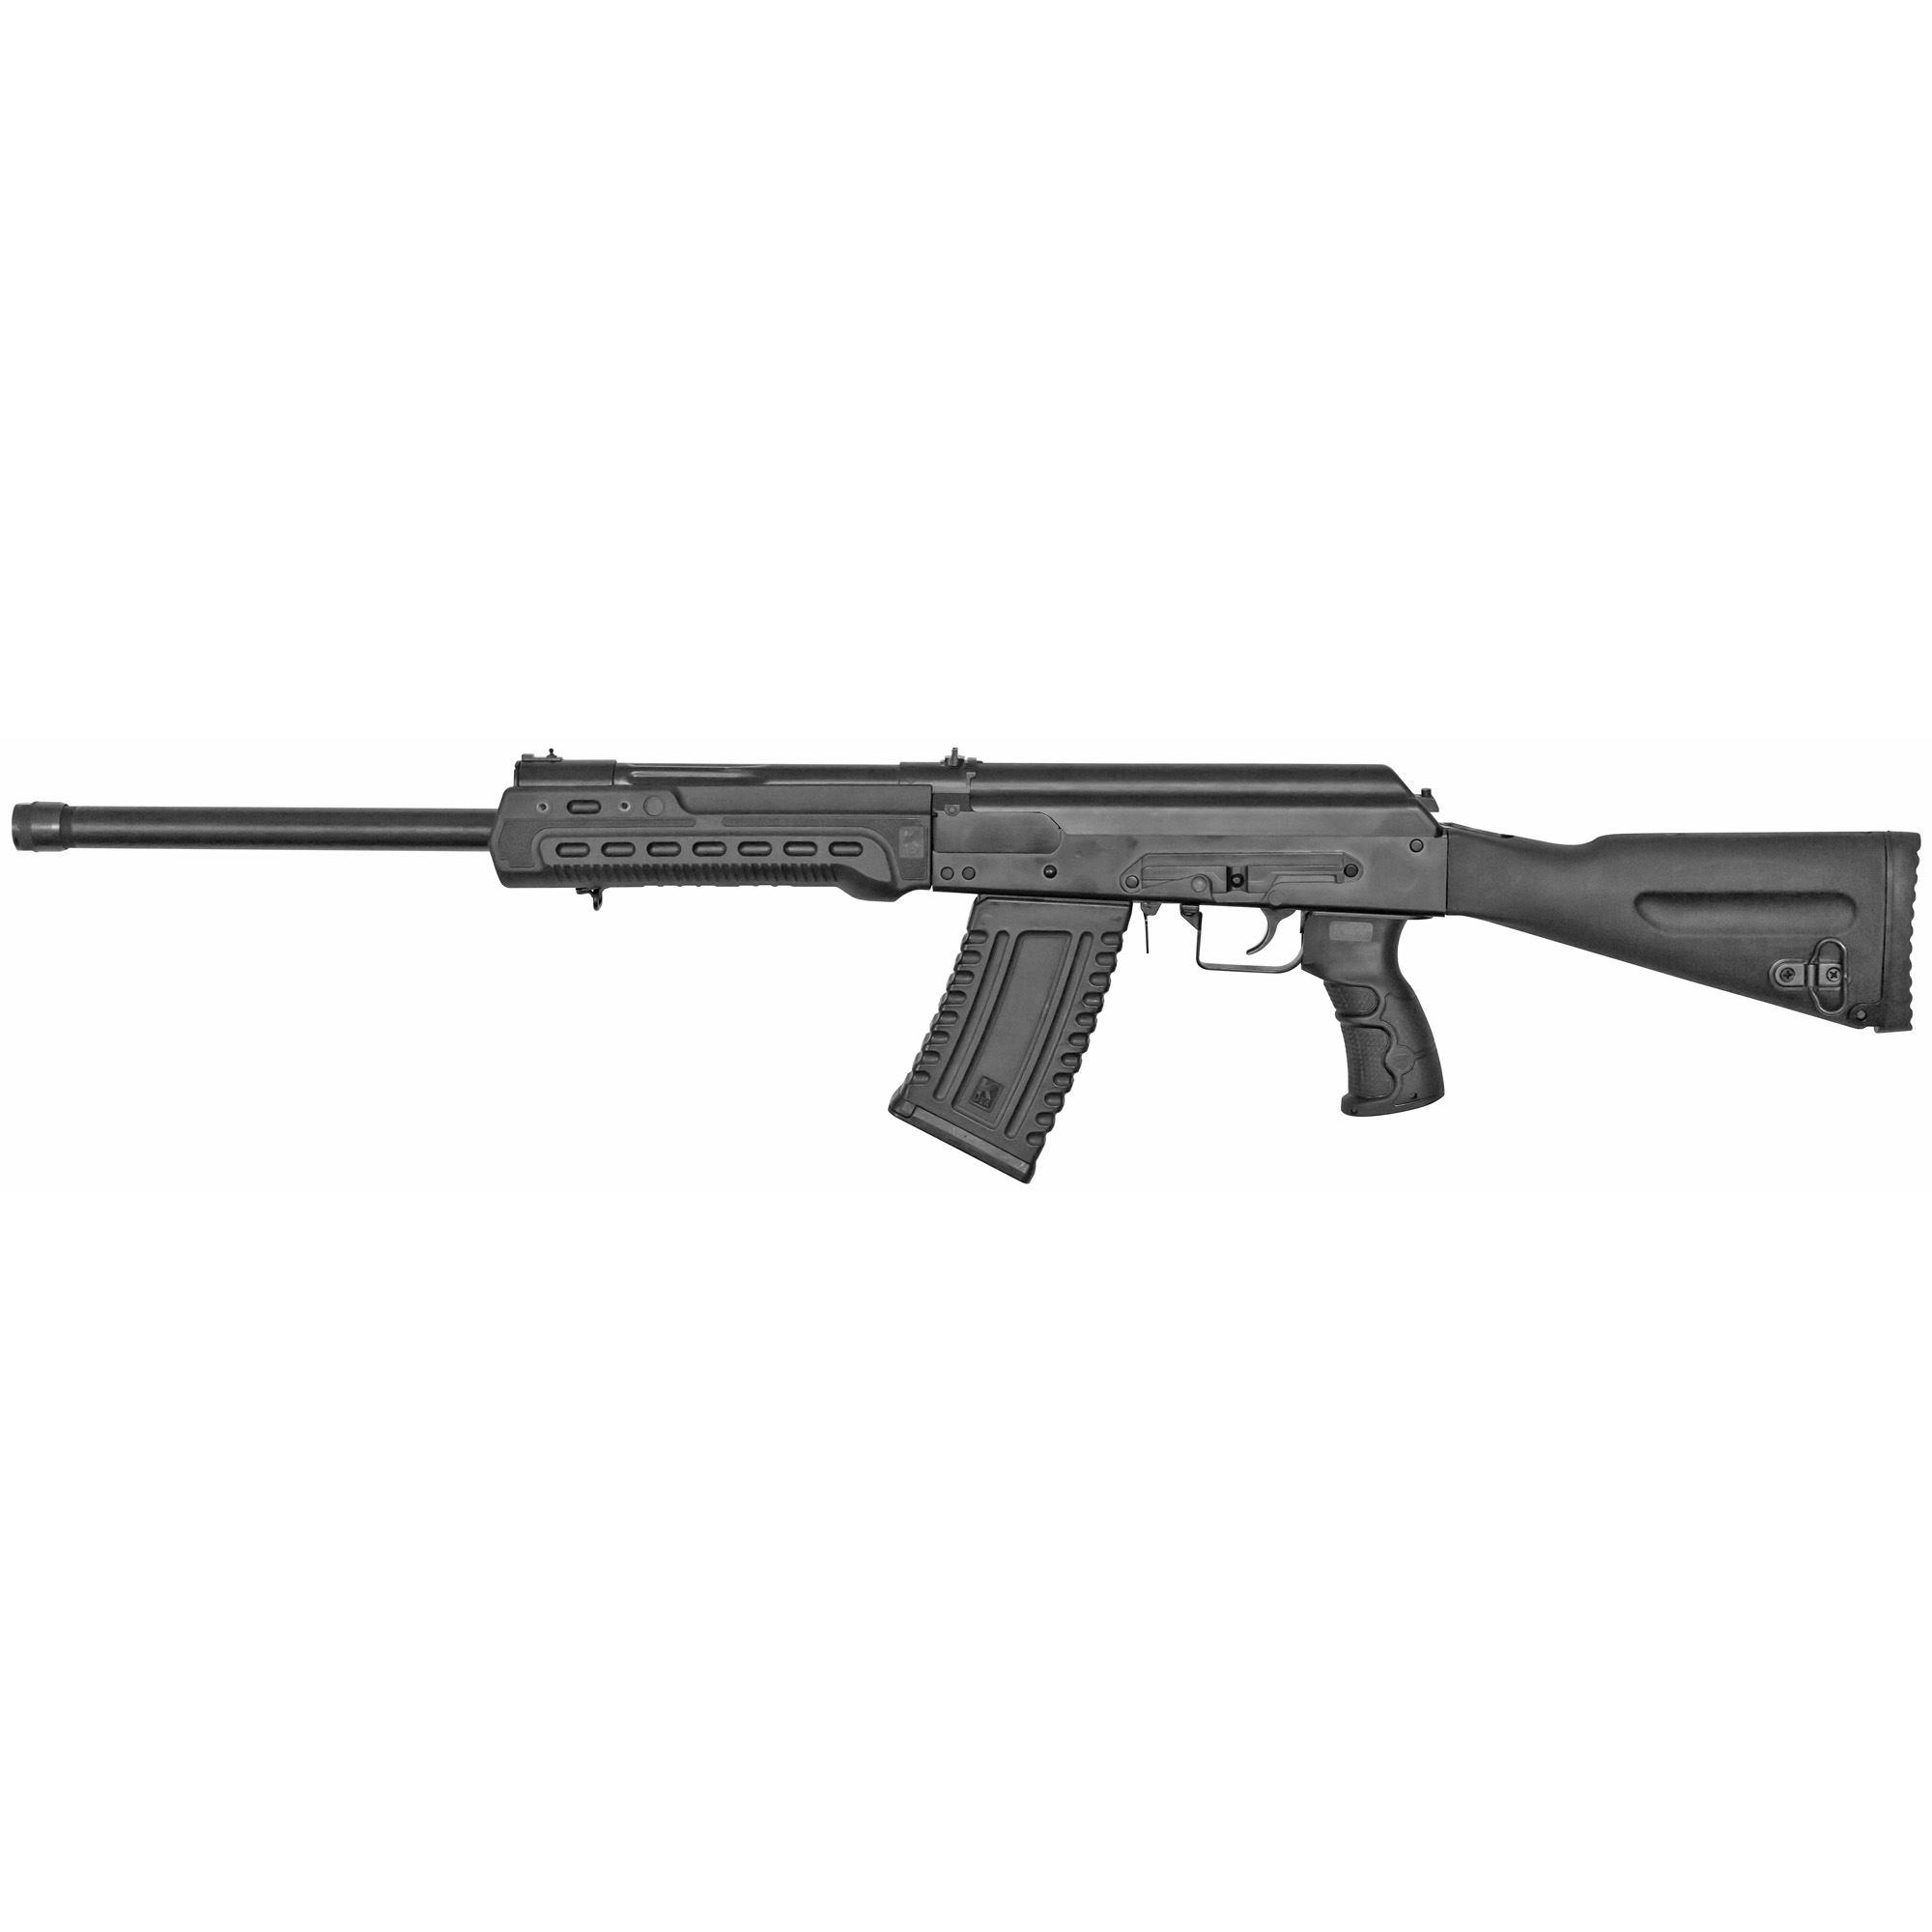 "The KS-12 is a US manufactured 12 GA semi-automatic shotgun based on the Russian Saiga series. It is designed to accept 2.75"" and 3"" shells and includes a 5 round magazine. The KS-12 has a standard side mounted optics rail"" a fixed buttstock and a standard pistol grip."